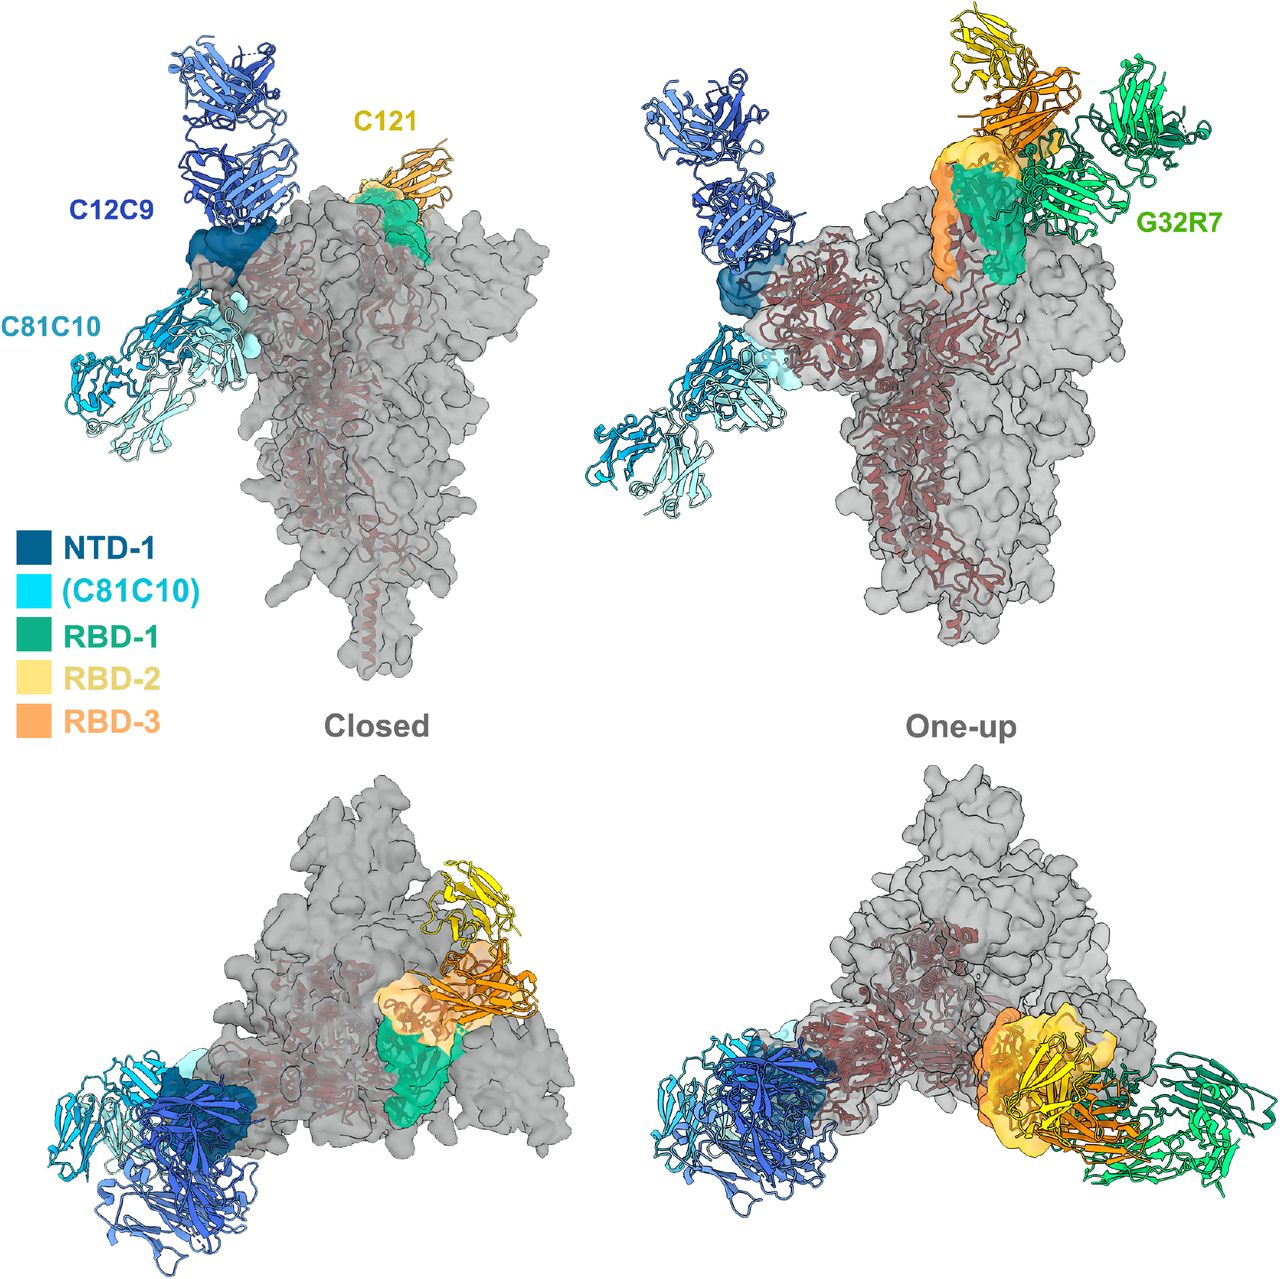 """Ab contact regions. Surface regions of the SARS-CoV-2 spike protein trimer contacted by antibodies in four of the seven principal clusters, according to the color scheme shown (taken from the color scheme in Fig. 2 ), with a representative Fab for all except RBD-3. The C81C10 Fab defines an epitope just outside the margin of NTD-1, but it does not compete with any antibodies in RBD-2. The RBD-2 Fv shown is that of C121 (PDB ID: 7K8X: Barnes et al, 2020), which fits most closely, of the many published RBD-2 antibodies, into our low-resolution map for C12A2. Left: views normal to and along threefold axis of the closed, all-RBD-down conformation; right: similar views of the one-RBD-up conformation. C121 (RBD-2) can bind both RBD down and RBD up; G32R7 (RBD-1) binds only the """"up"""" conformation of the RBD. The epitopes of the several published RBD-3 antibodies are partly occluded in both closed and open conformations of the RBD; none are shown here as cartoons. A cartoon of the polypeptide chain of a single subunit (dark red) is shown within the surface contour for a spike trimer (gray)."""